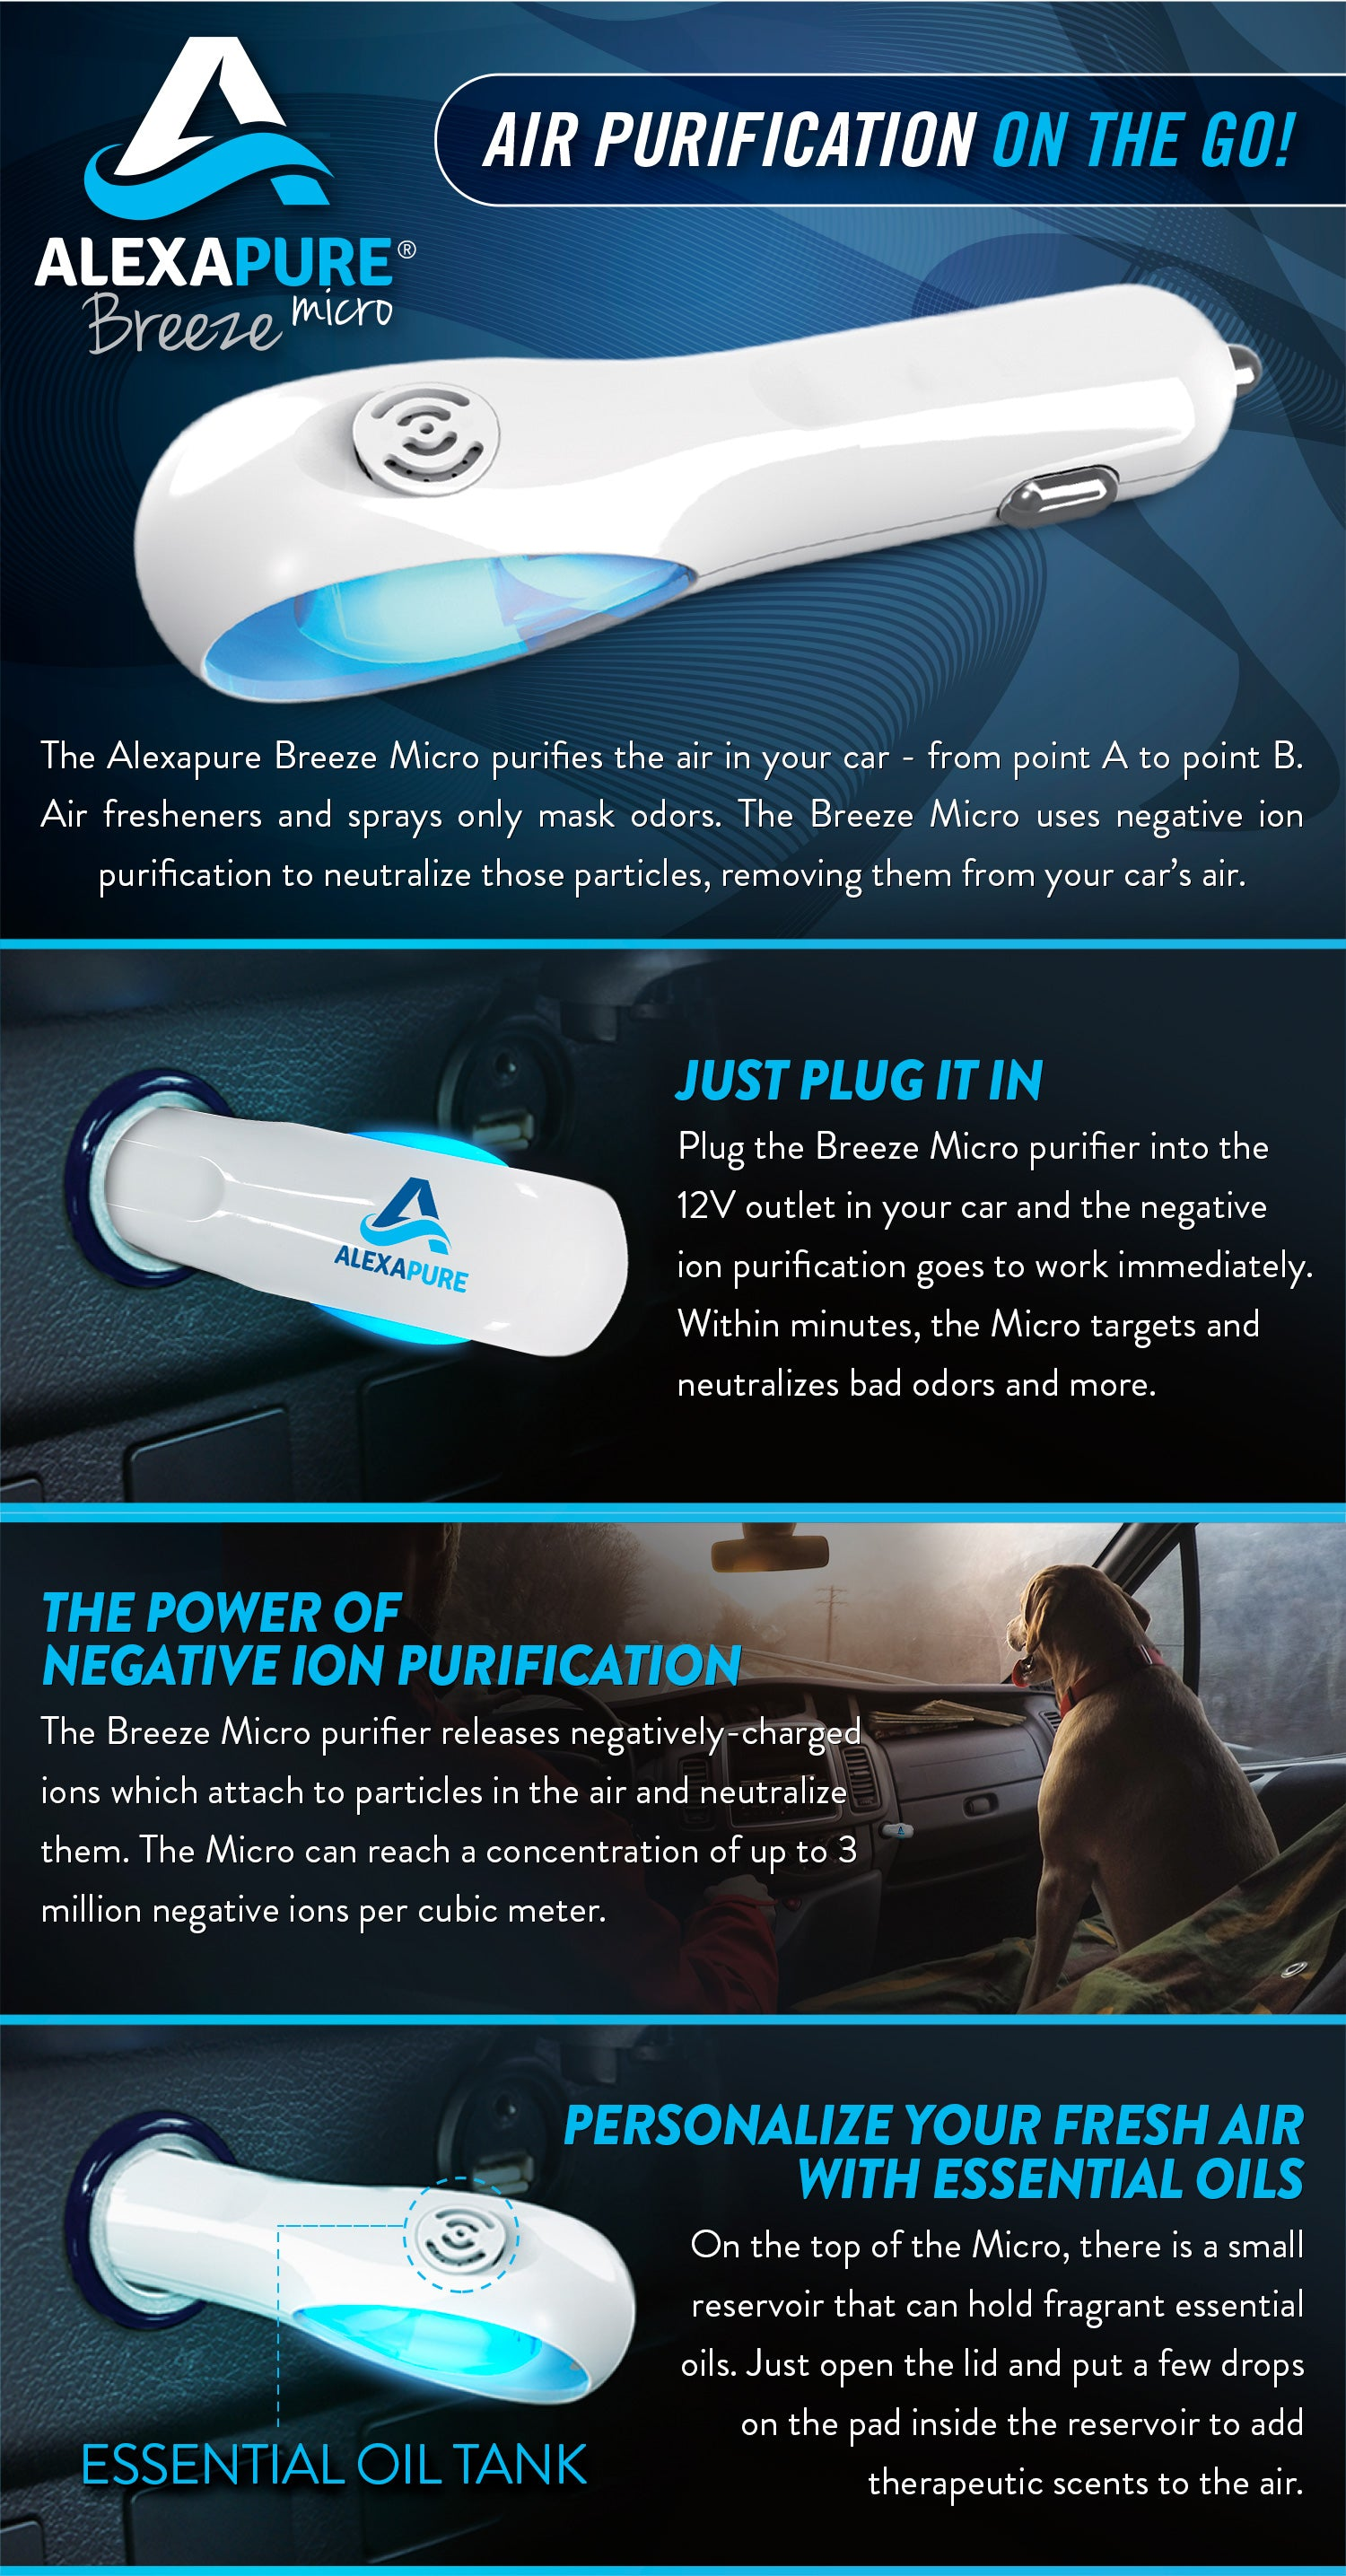 AIR PURIFICATION ON THE GO  The Alexapure Breeze Micro purifies the air in your car - from point A to point B. Air fresheners and sprays only mask odors. The Breeze Micro uses negative ion purification to neutralize those particles, removing them from your car's air.  Plug the Breeze Micro purifier into the 12V outlet in your car and the negative ion purification goes to work immediately. Within minutes, the Micro targets and neutralizes bad odors and more.  THE POWER OF NEGATIVE ION PURIFICATION  The Breeze Micro purifier releases negatively-charged ions which attach to particles in the air and neutralize them. The Micro can reach a concentration of up to 3 million negative ions per cubic meter.  PERSONALIZE YOUR FRESH AIR WITH ESSENTIAL OILS  On the top of the Micro, there is a small reservoir that can hold fragrant essential oils. Just open the lid and put a few drops on the pad inside the reservoir to add therapeutic scents to the air.